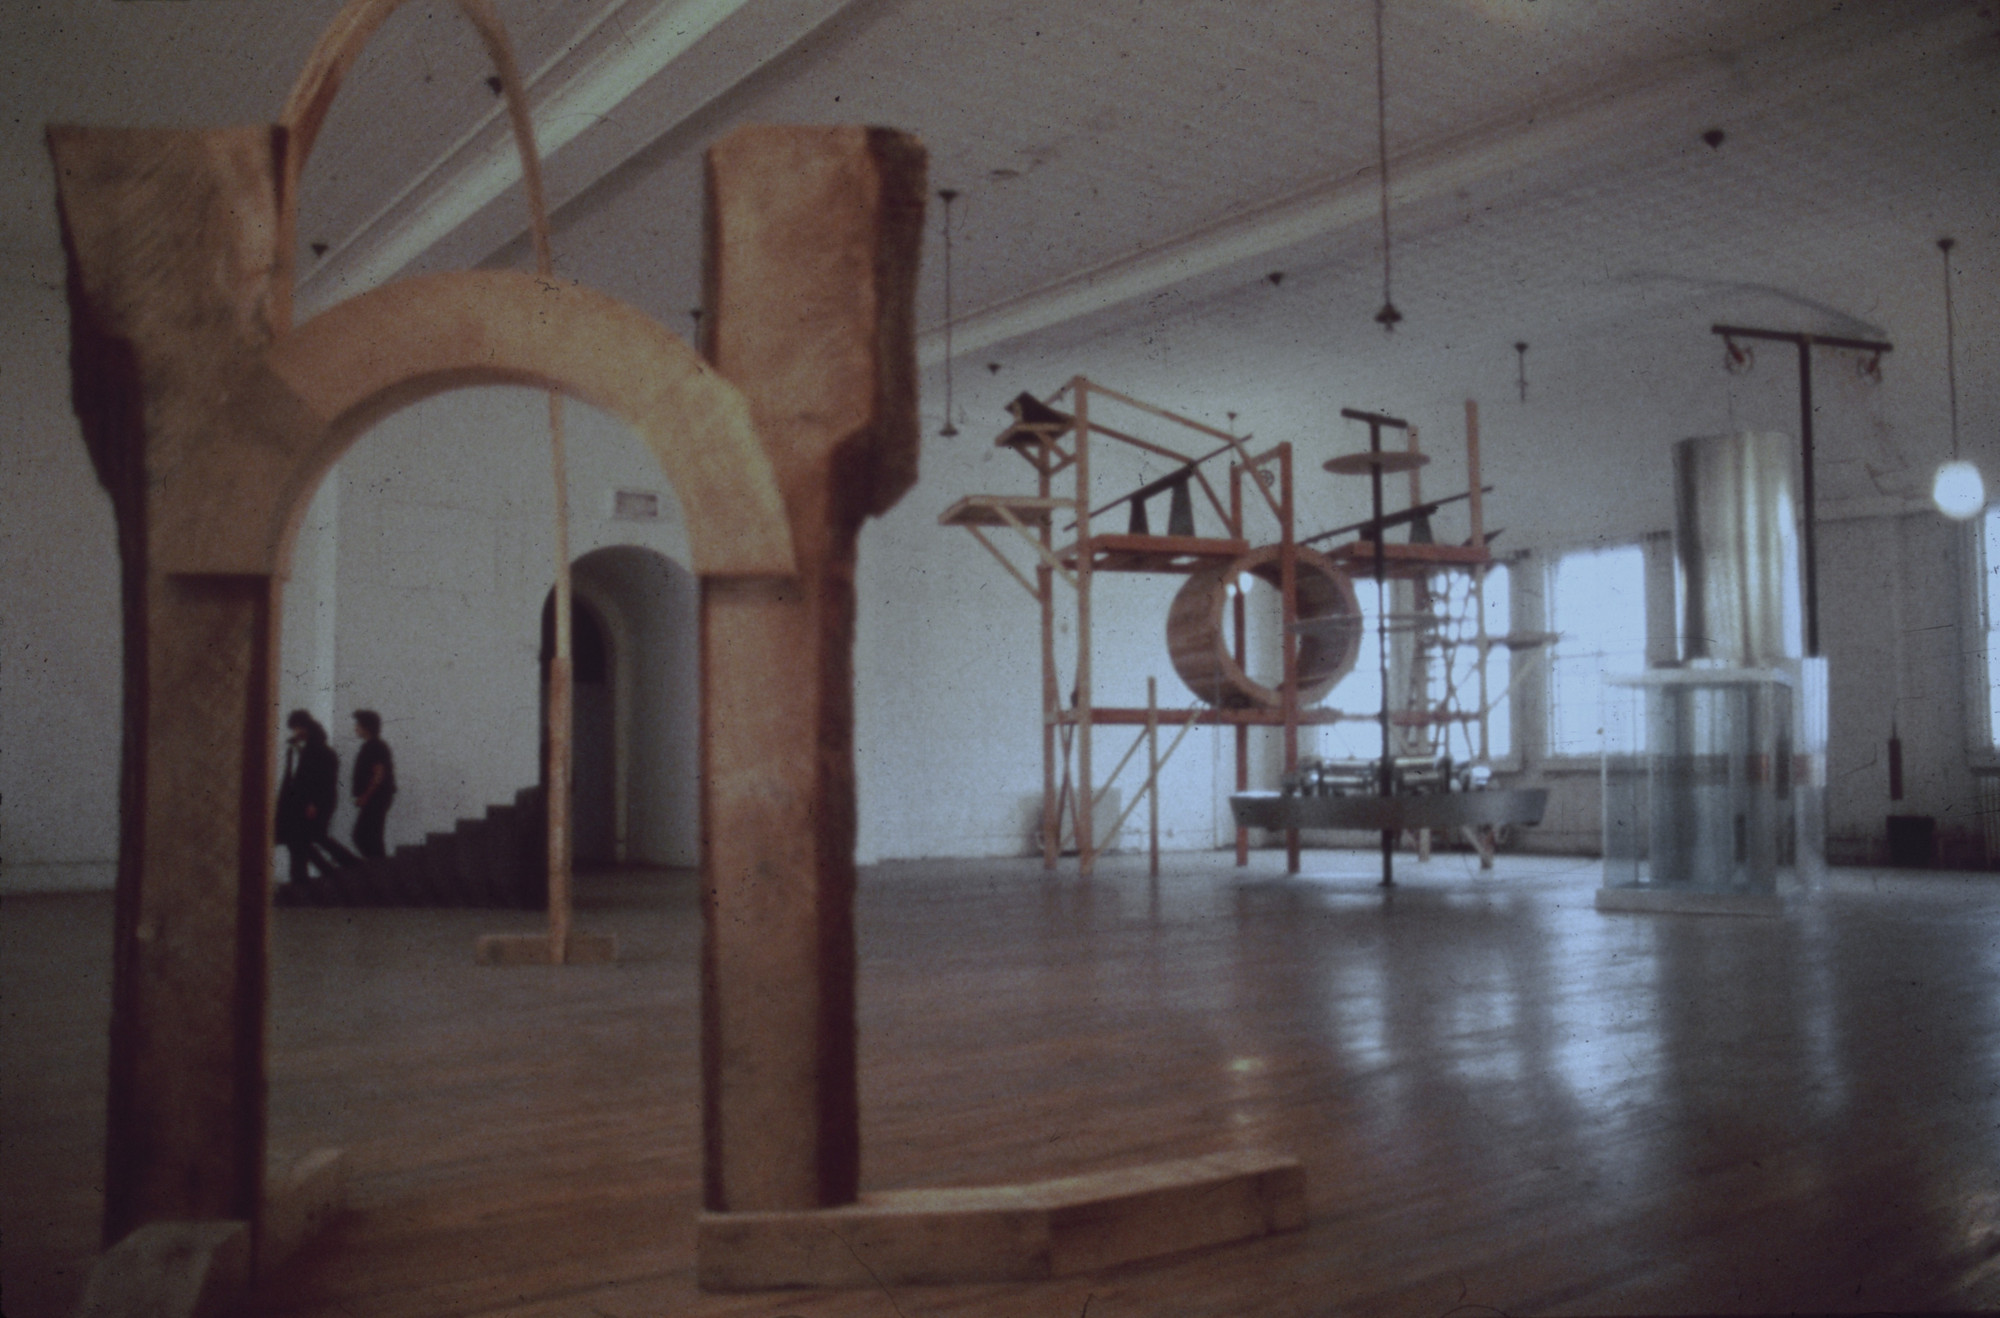 "Installation view of the P.S. 1 exhibition ""Special Projects (Winter 1980)"" showing works by Adams, Aycock, and Saganic February 17–April 6, 1980. MoMA PS1 Archives, II.A.587. The Museum of Modern Art Archives, New York. INPS1.223.1"